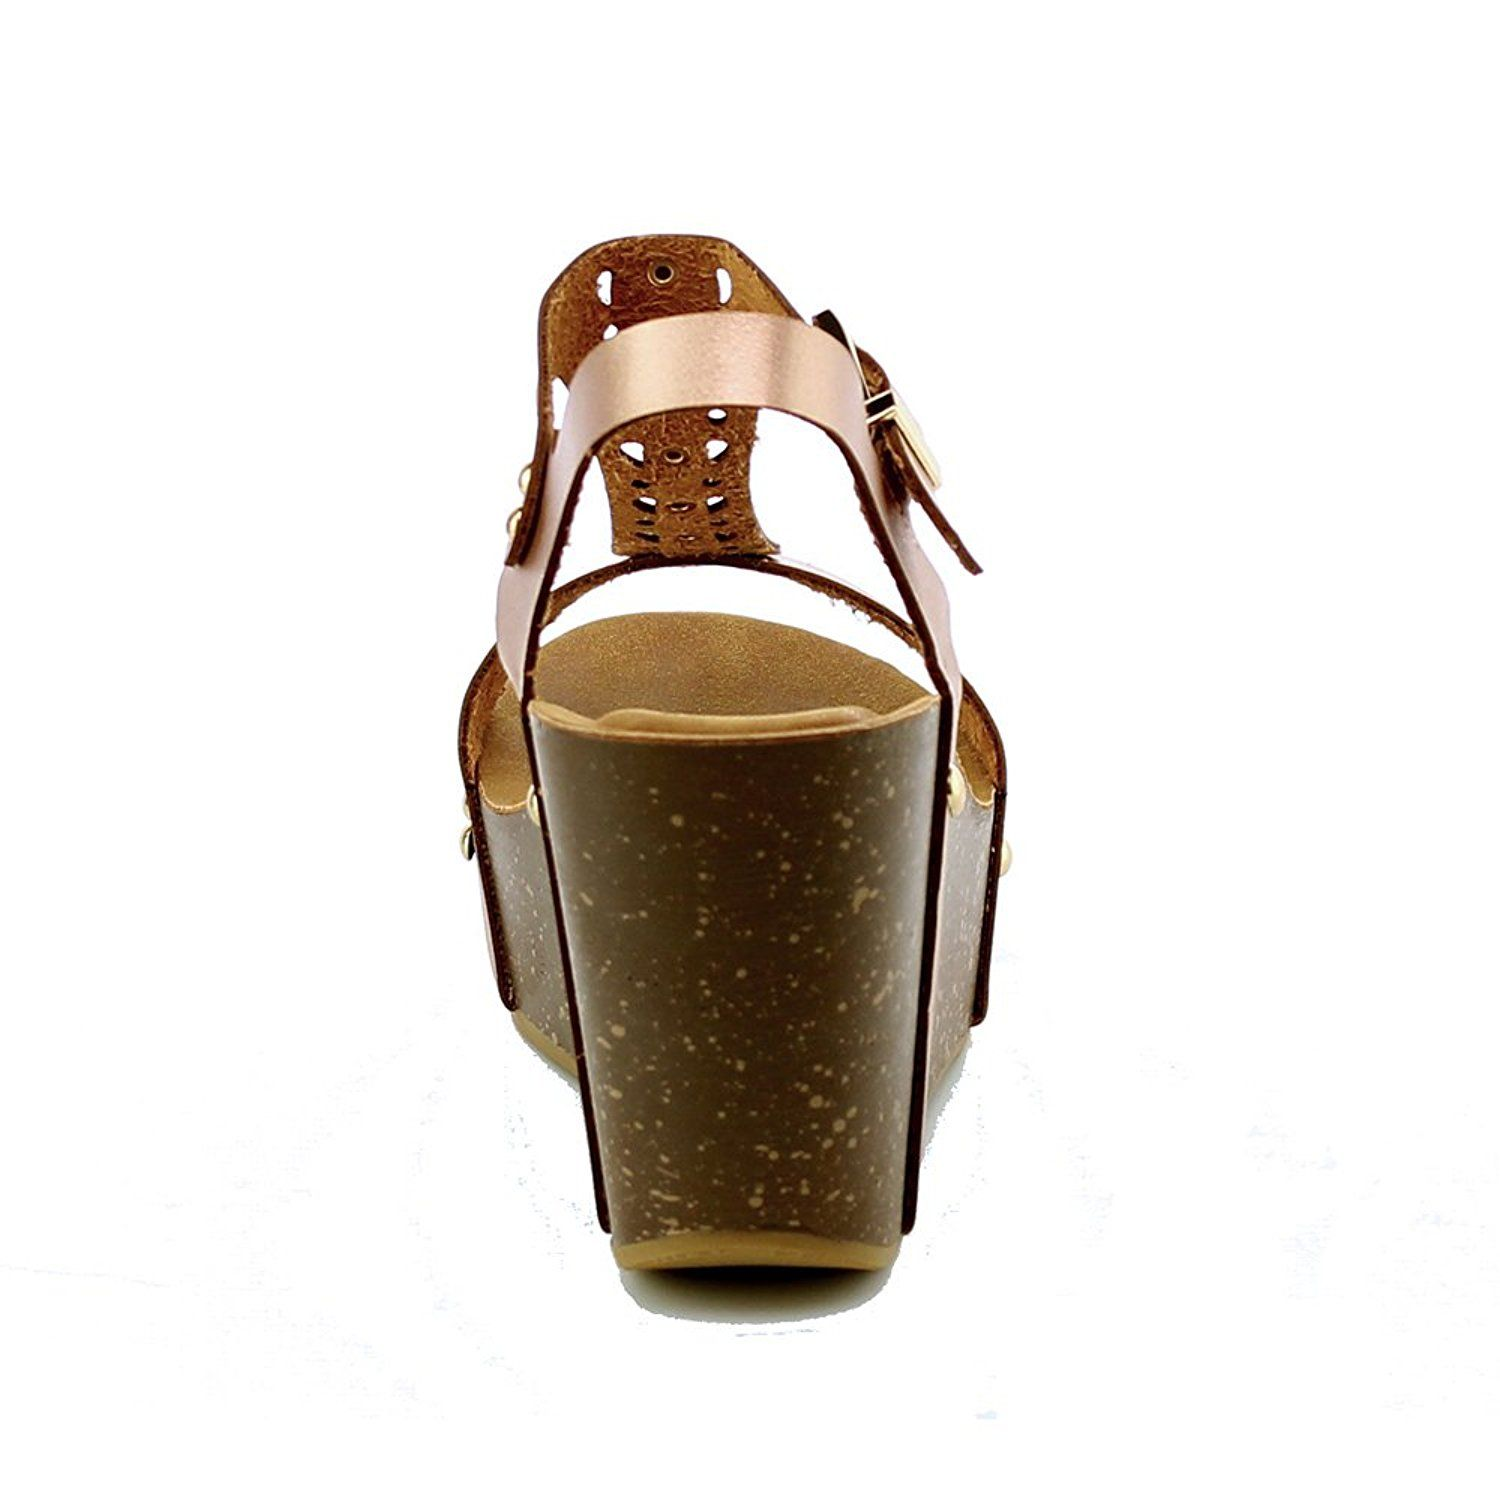 dff1ceb22 WestCoast Women s Open Toe Ankle Strap Wedge Platform Sandal Shoes      Click image to review more details. (This is an affiliate link)  shoelover